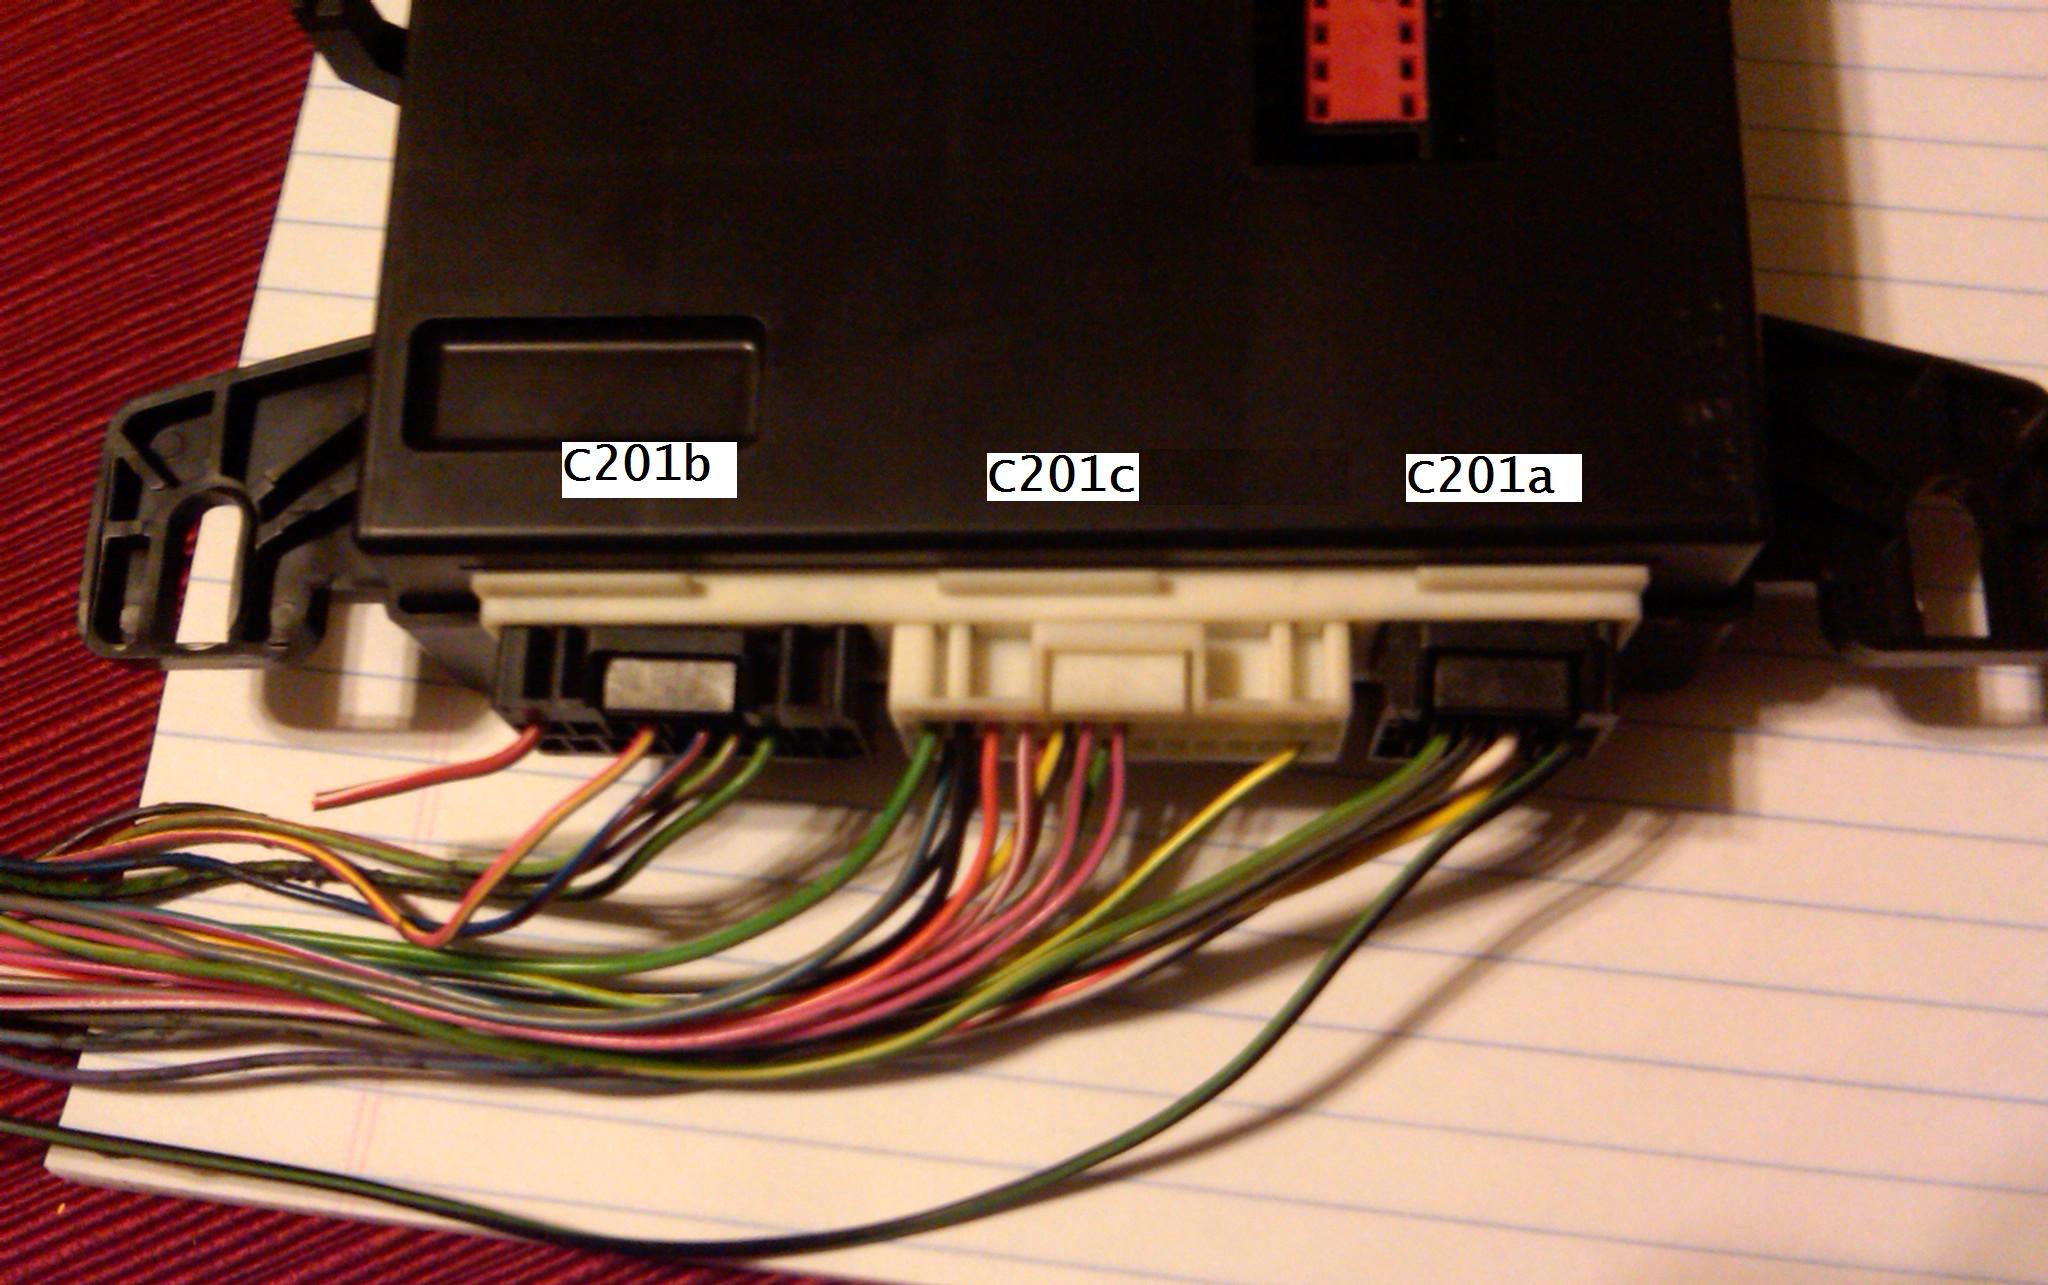 58388d1261601814 2003 stereo wiring harness img00089_20091222_2159 2003 stereo wiring harness taurus car club of america ford 1999 Mercury Sable Repair Manual at crackthecode.co